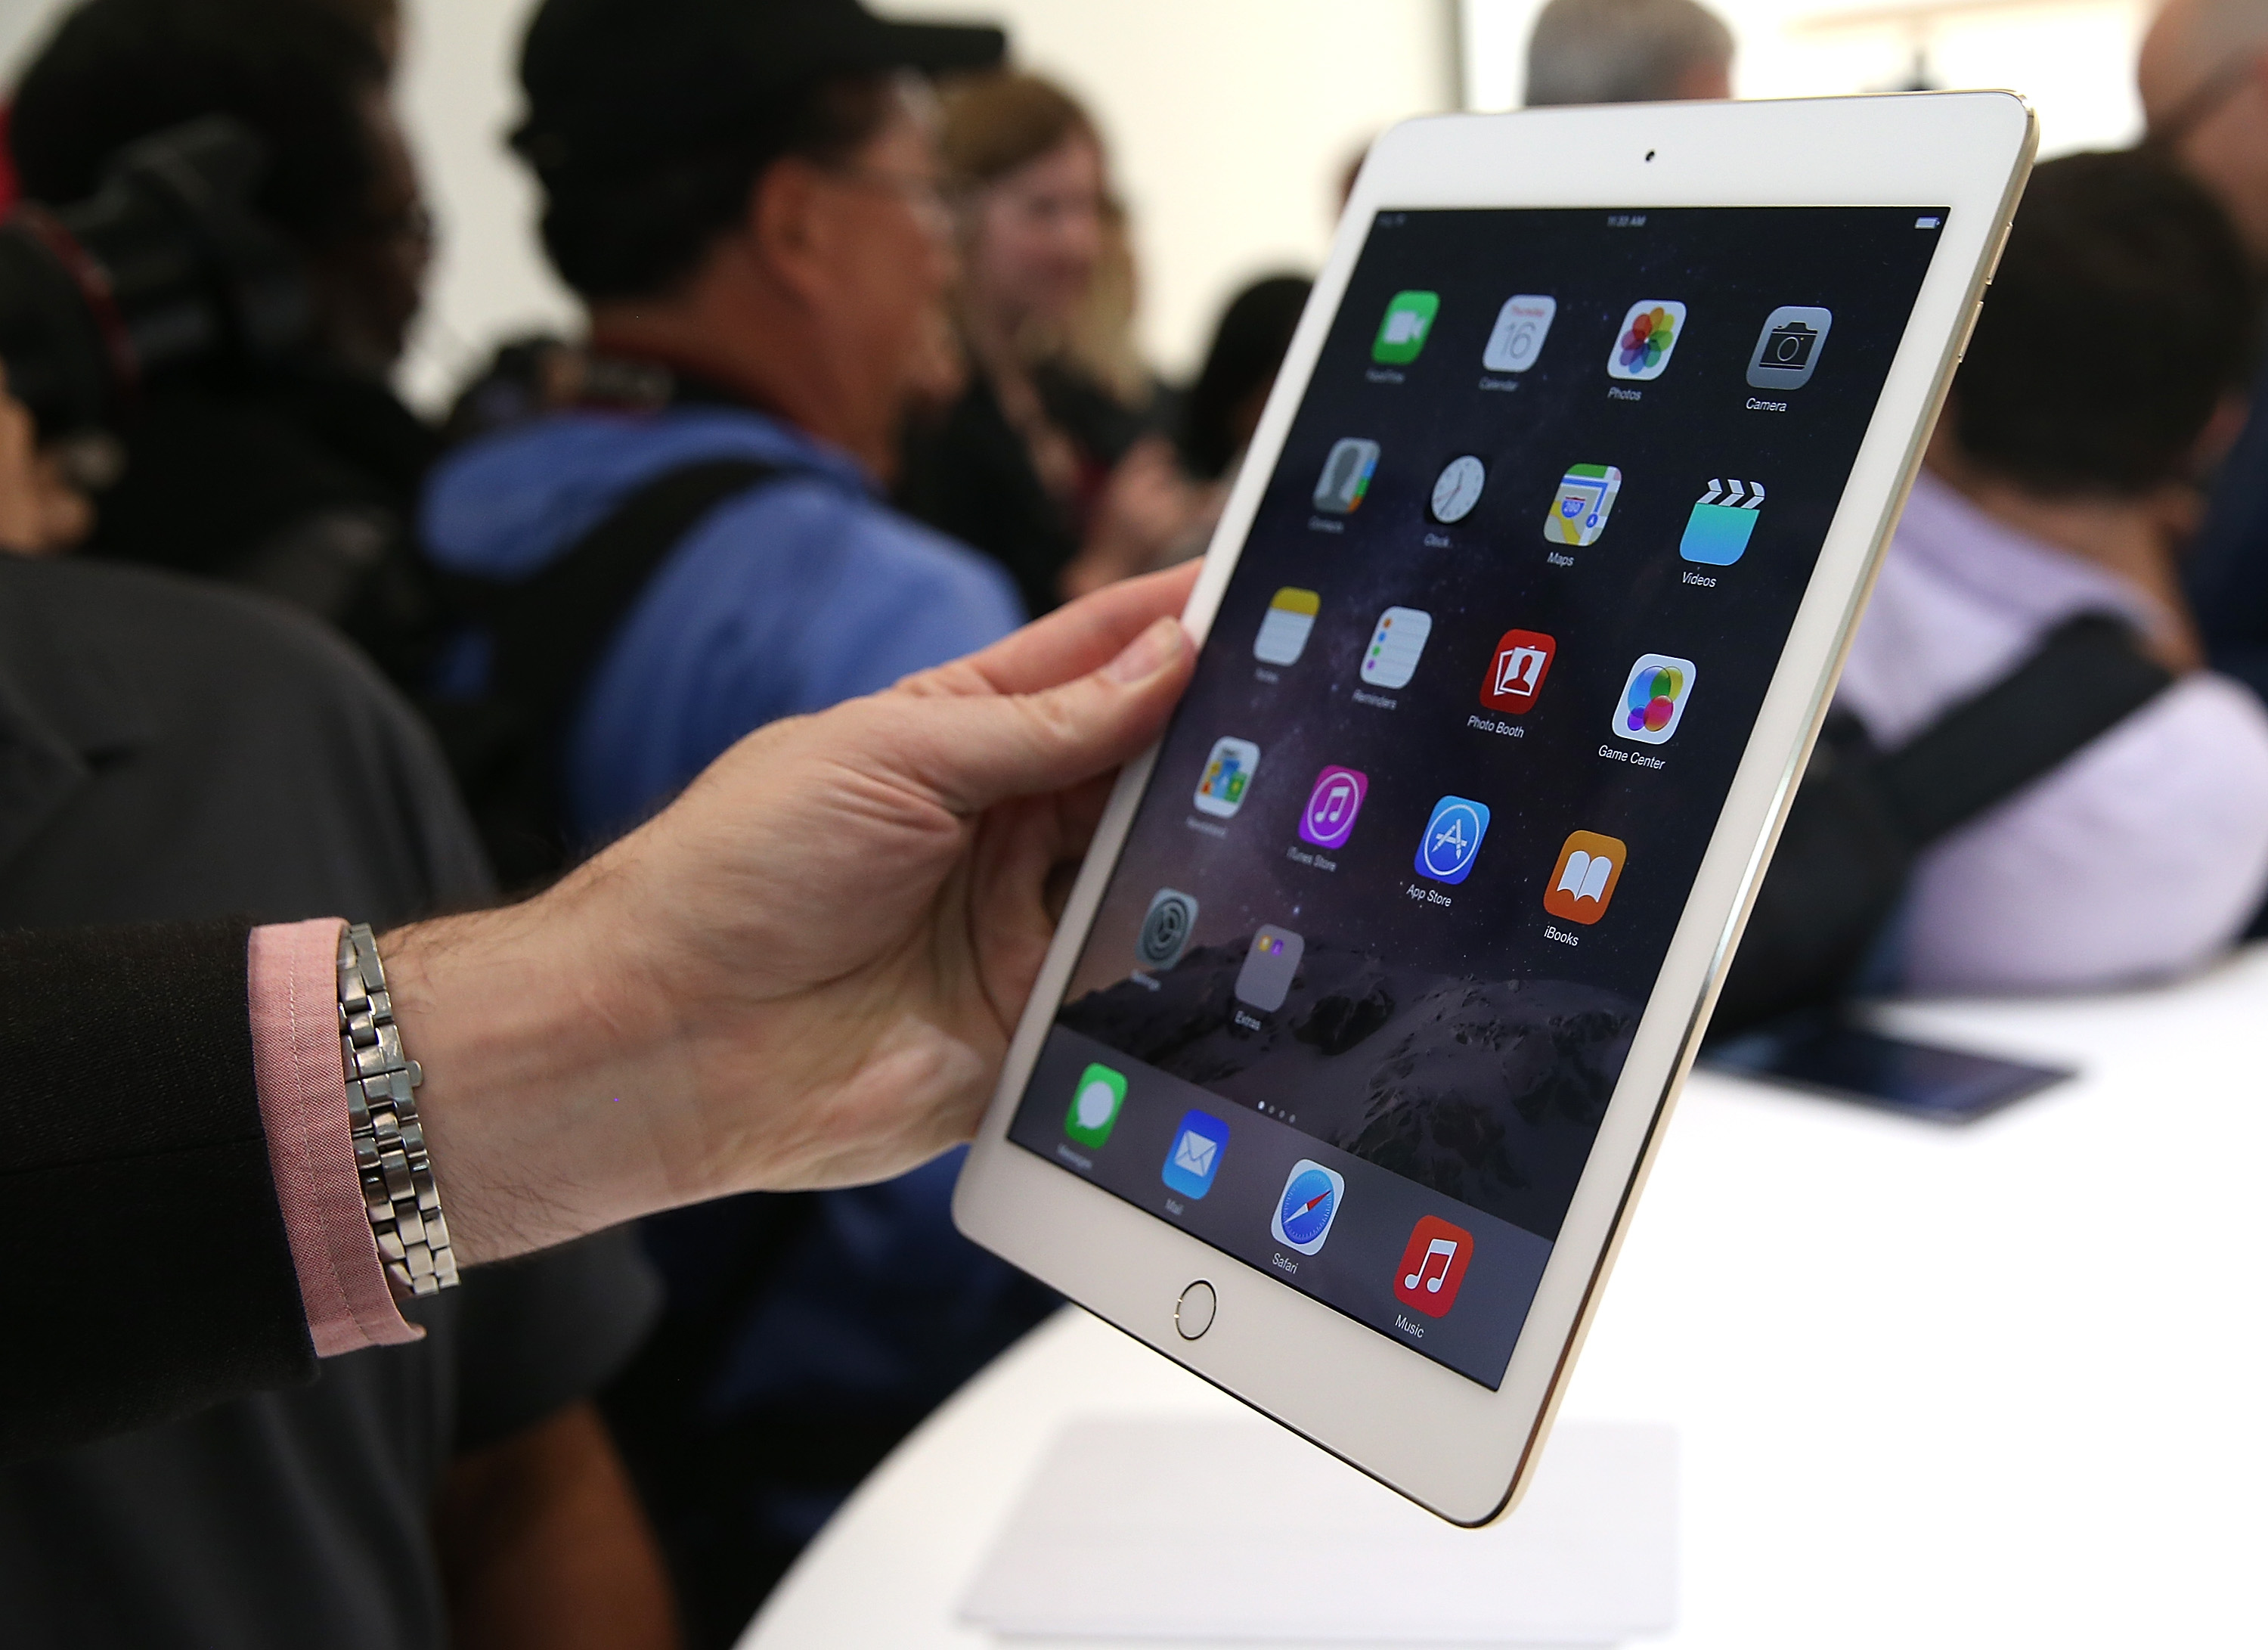 An attendee inspects new iPad Air 2 during an Apple special event on October 16, 2014 in Cupertino, California.